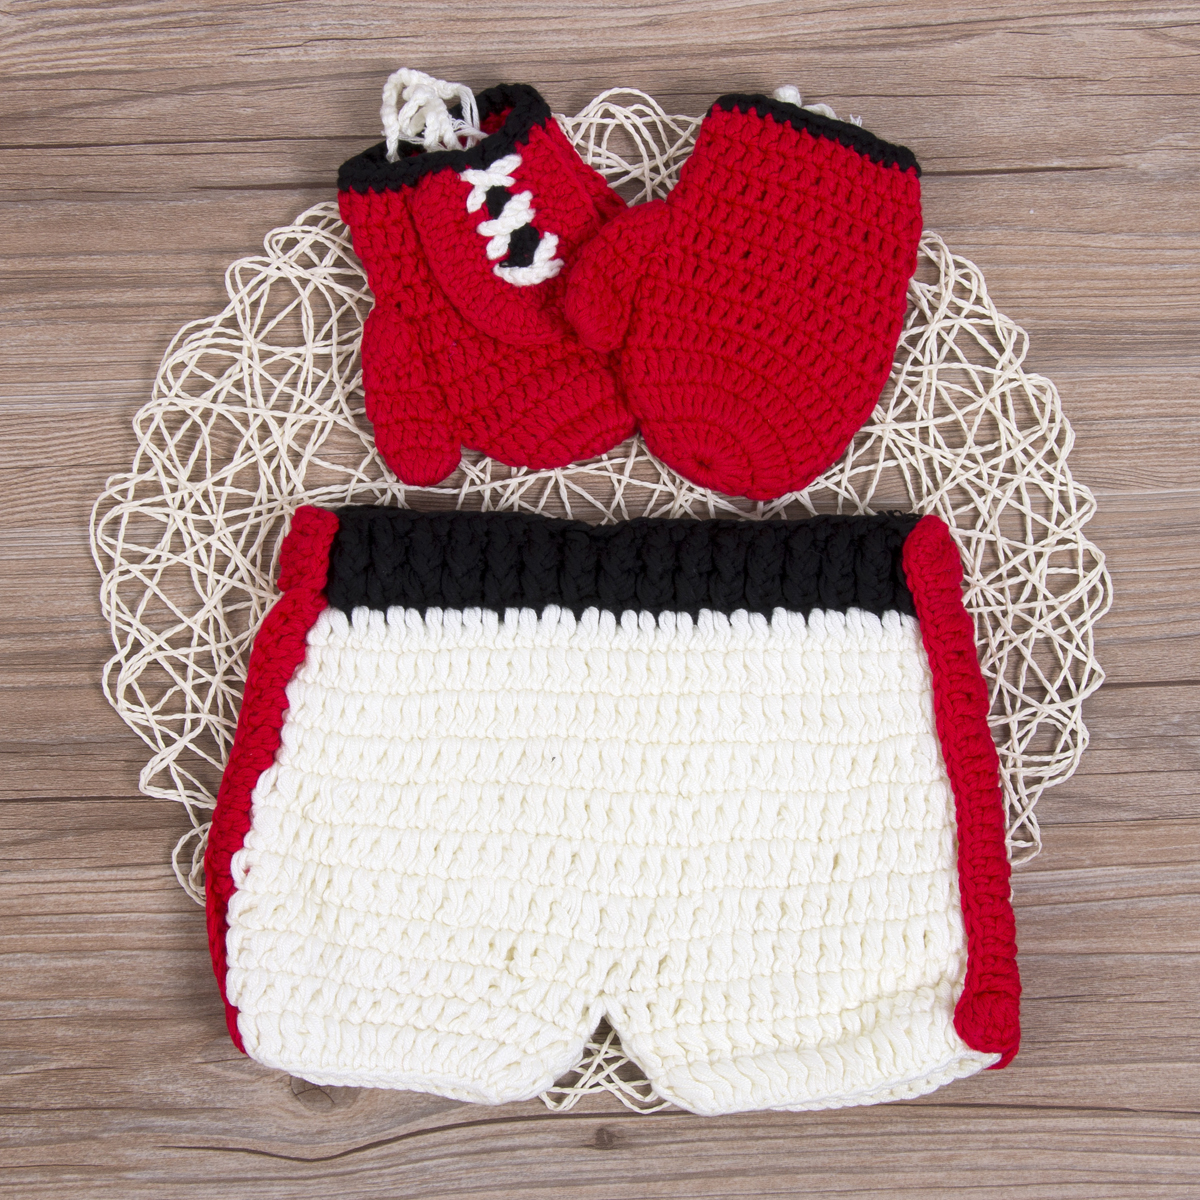 Xmas Newborn Baby Girl Boy Crochet Knit Pants Gloves Costume Photo Photography Props Outfits Warm Clothes Set 2pcs Baby